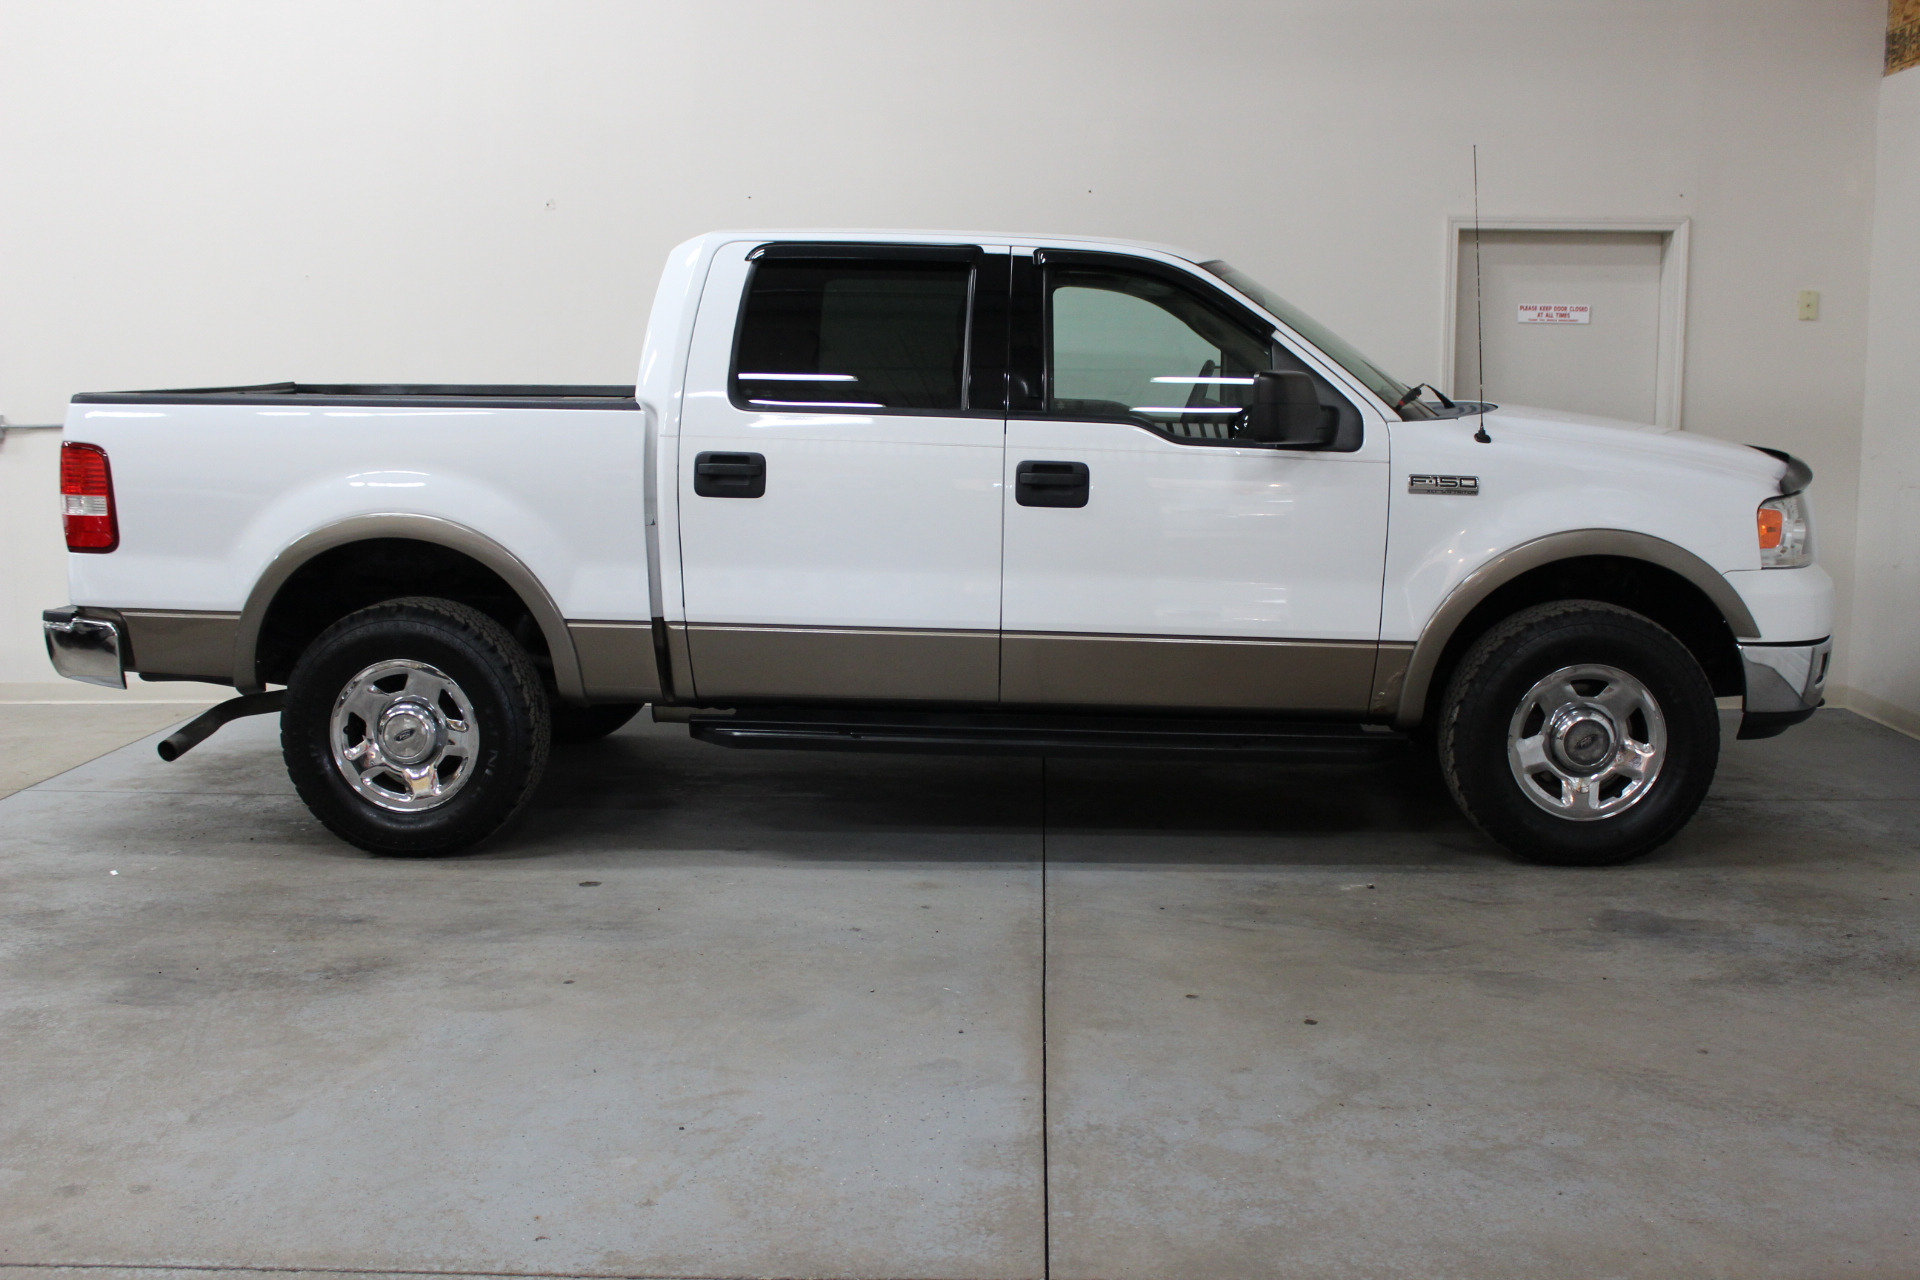 232_main_l Cool Review About 2004 ford F150 Extended Cab with Captivating Gallery Cars Review